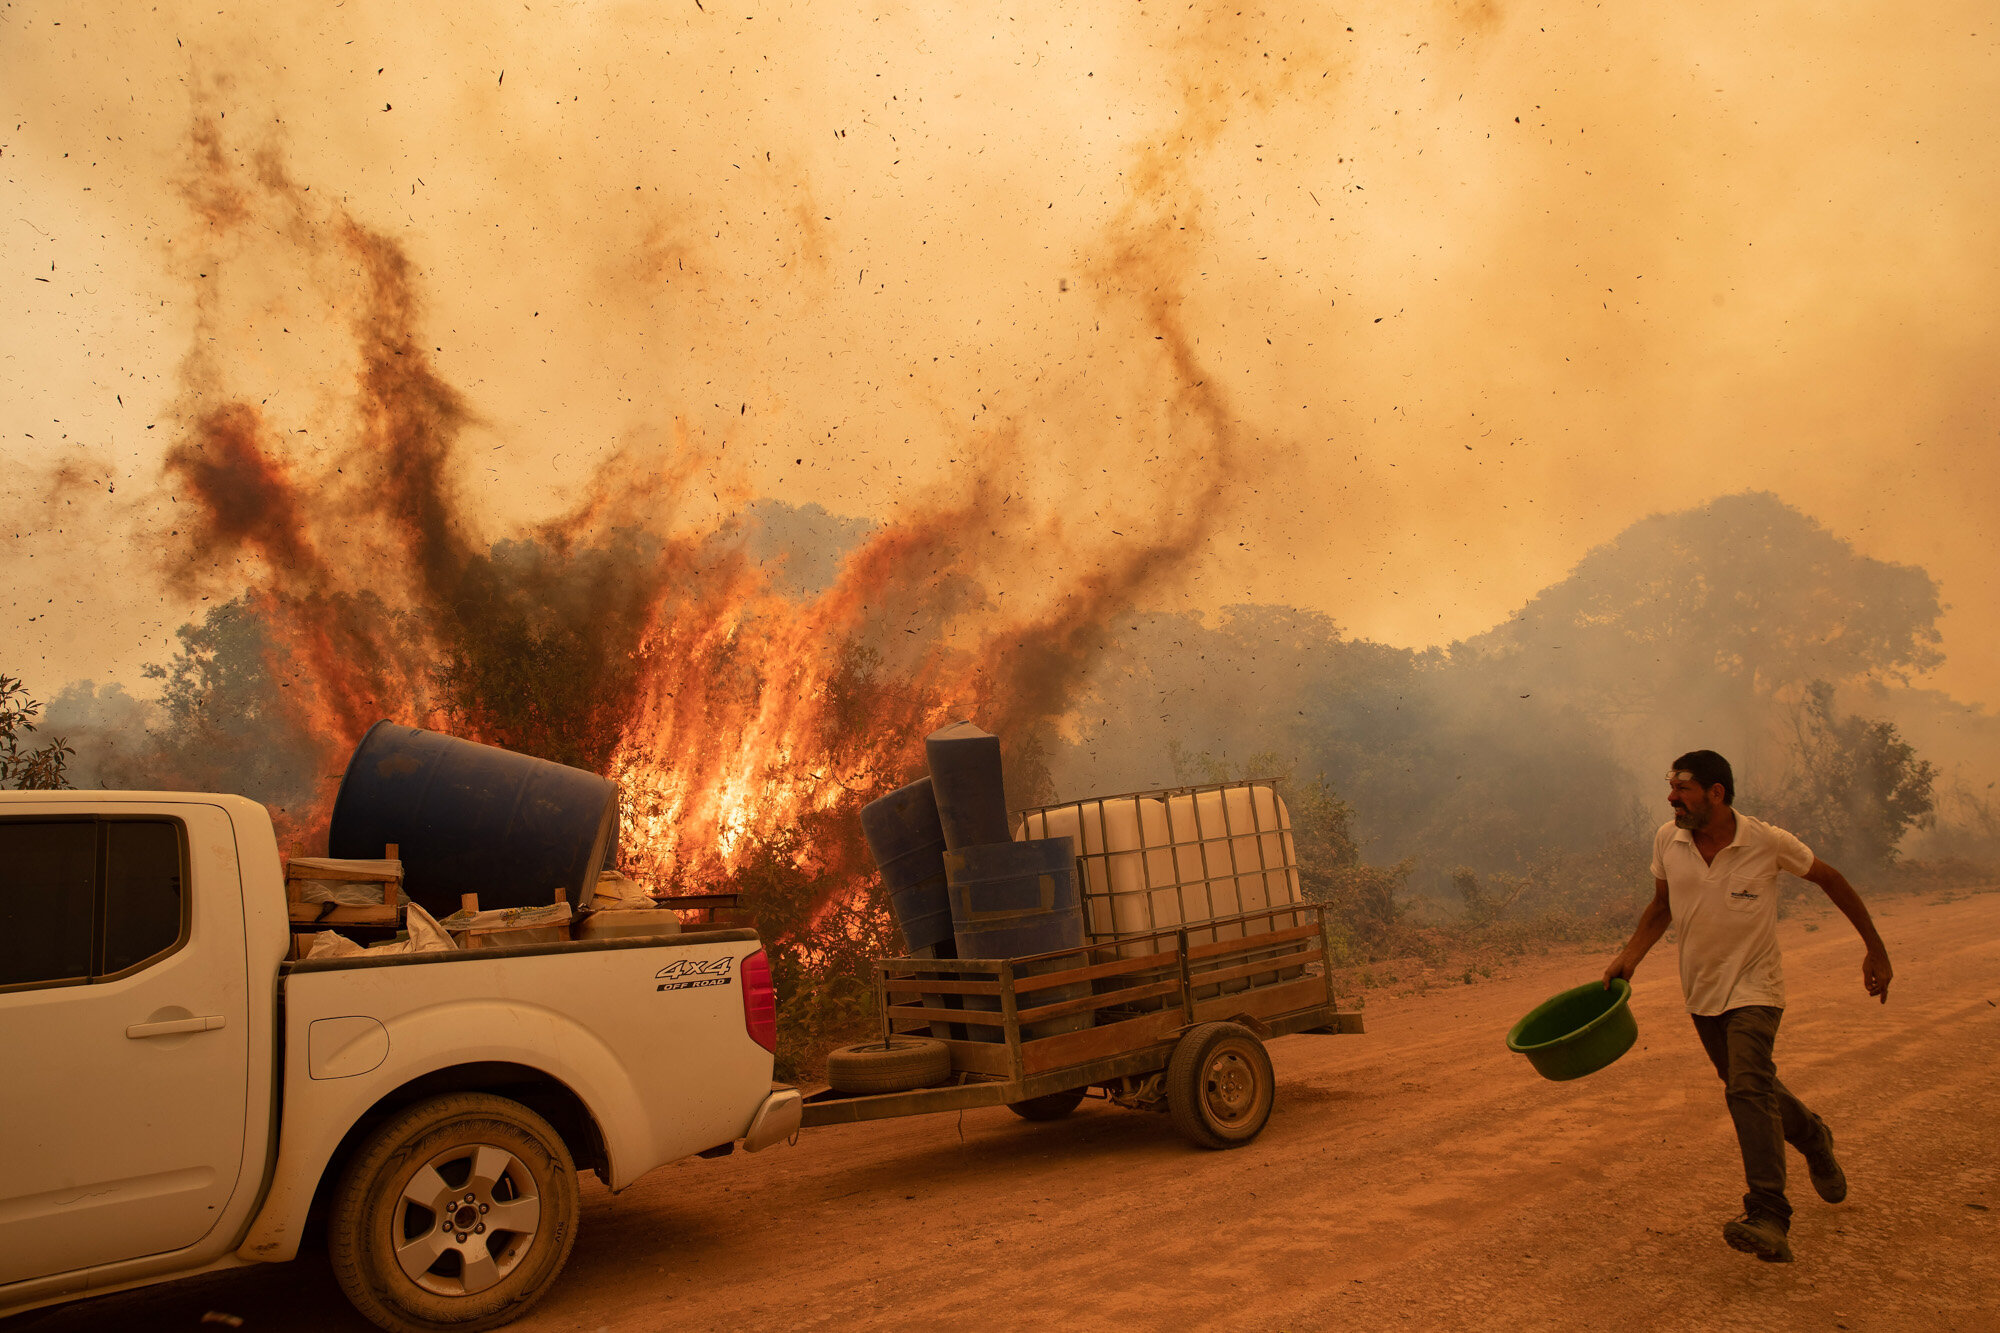 A volunteer tries to douse a fire on Transpantaneira road in the Pantanal wetlands near Pocone, Mato Grosso state, Brazil, on Sept. 11, 2020. The number of fires in Brazil's Pantanal, the world's biggest tropical wetlands, more than doubled in the first half of 2020 compared to the same period last year, according to data released by a state institute. (AP Photo/Andre Penner)